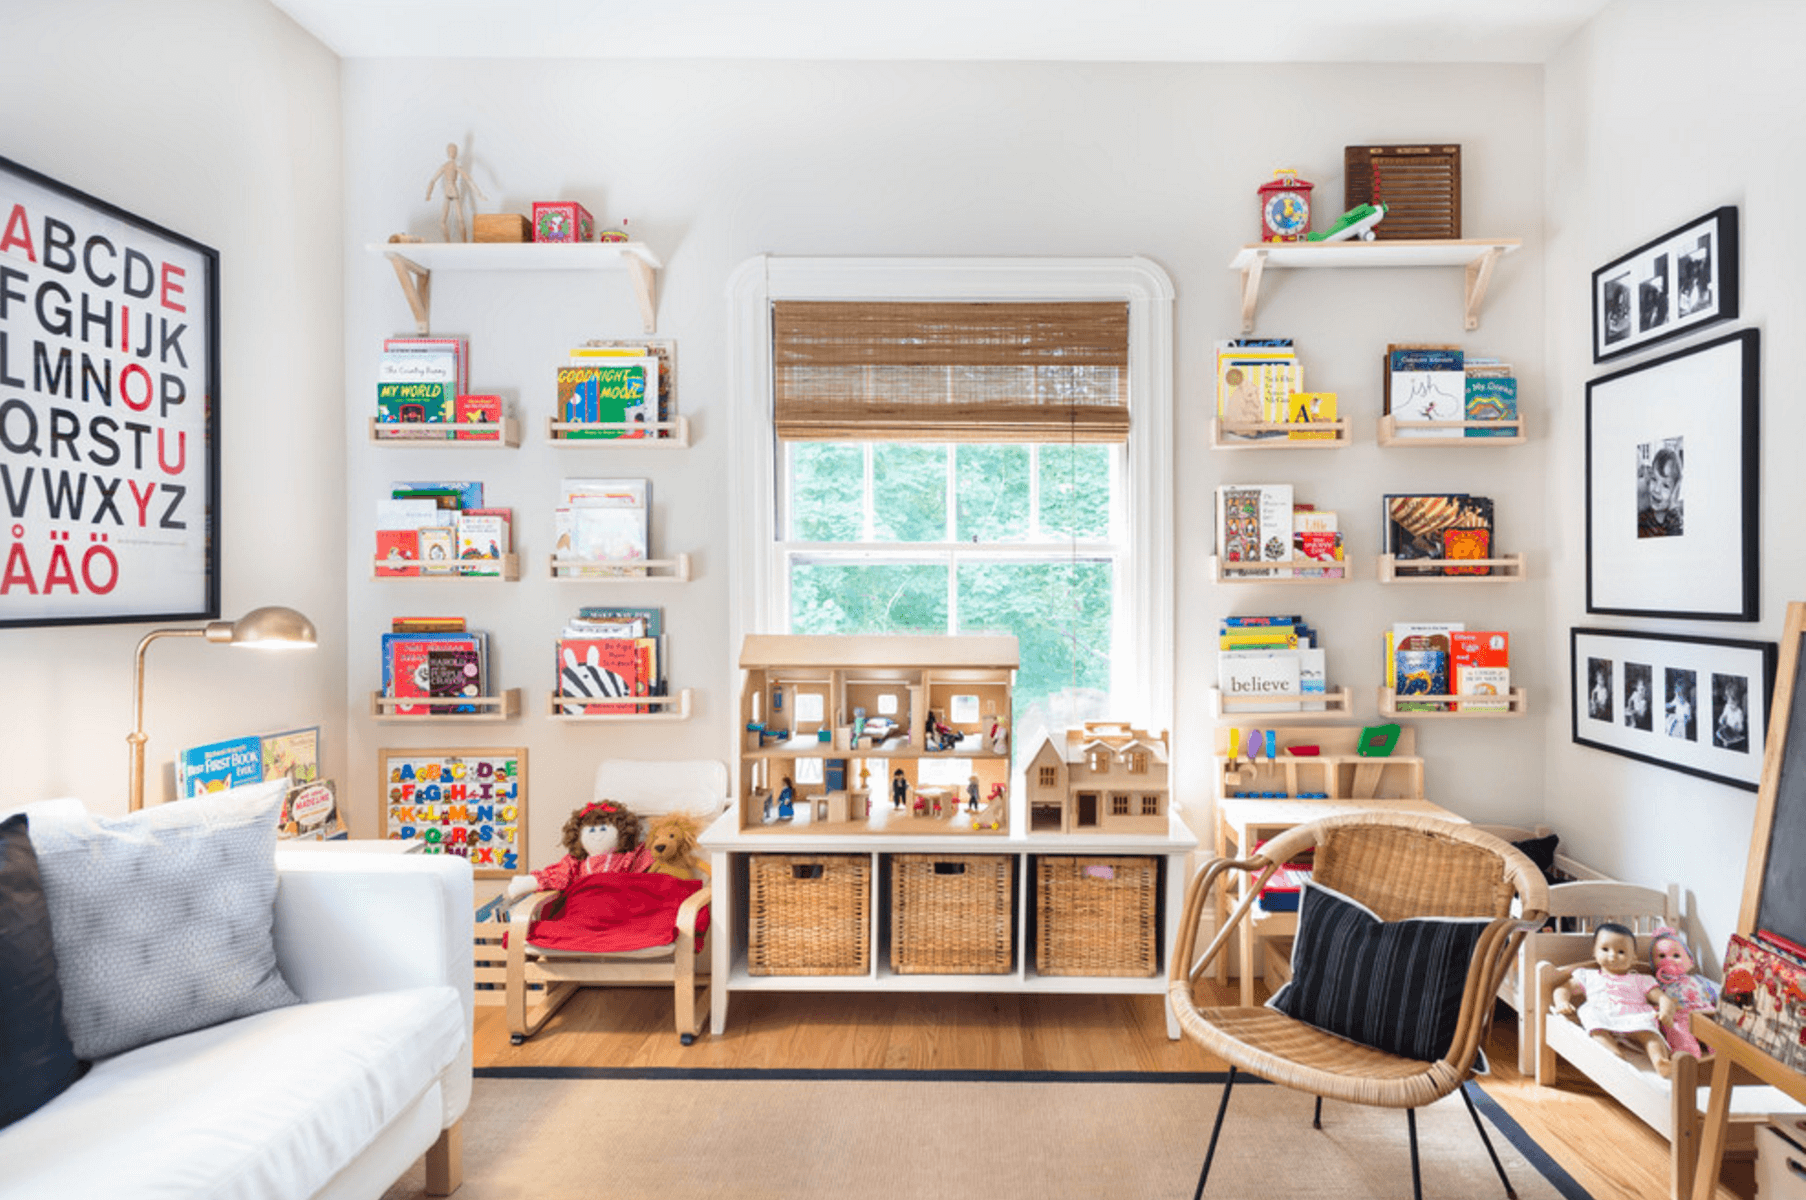 28 Ideas For Adding Color To A Kids Room Freshome Com